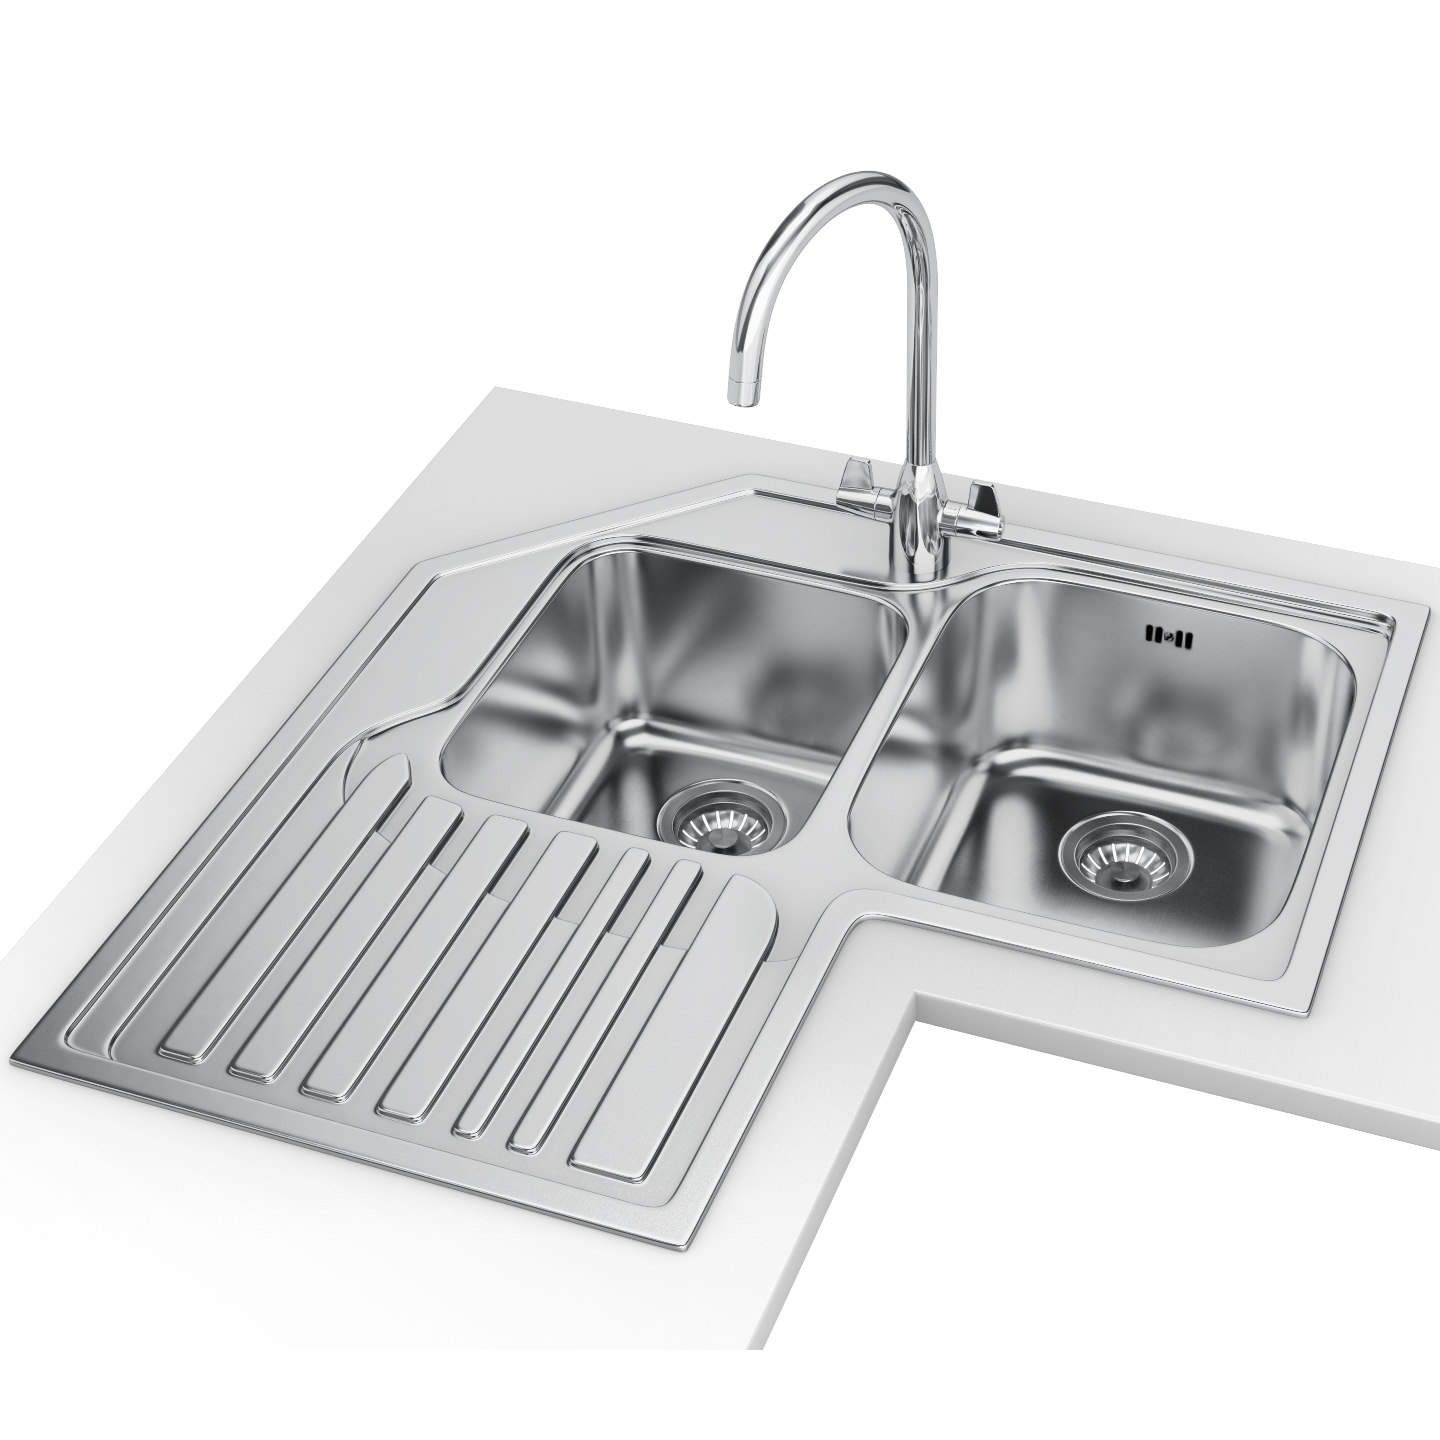 superb Stainless Steel Corner Sinks For Kitchens #9: Kitchen Corner Sinks Stainless Steel Zitzat